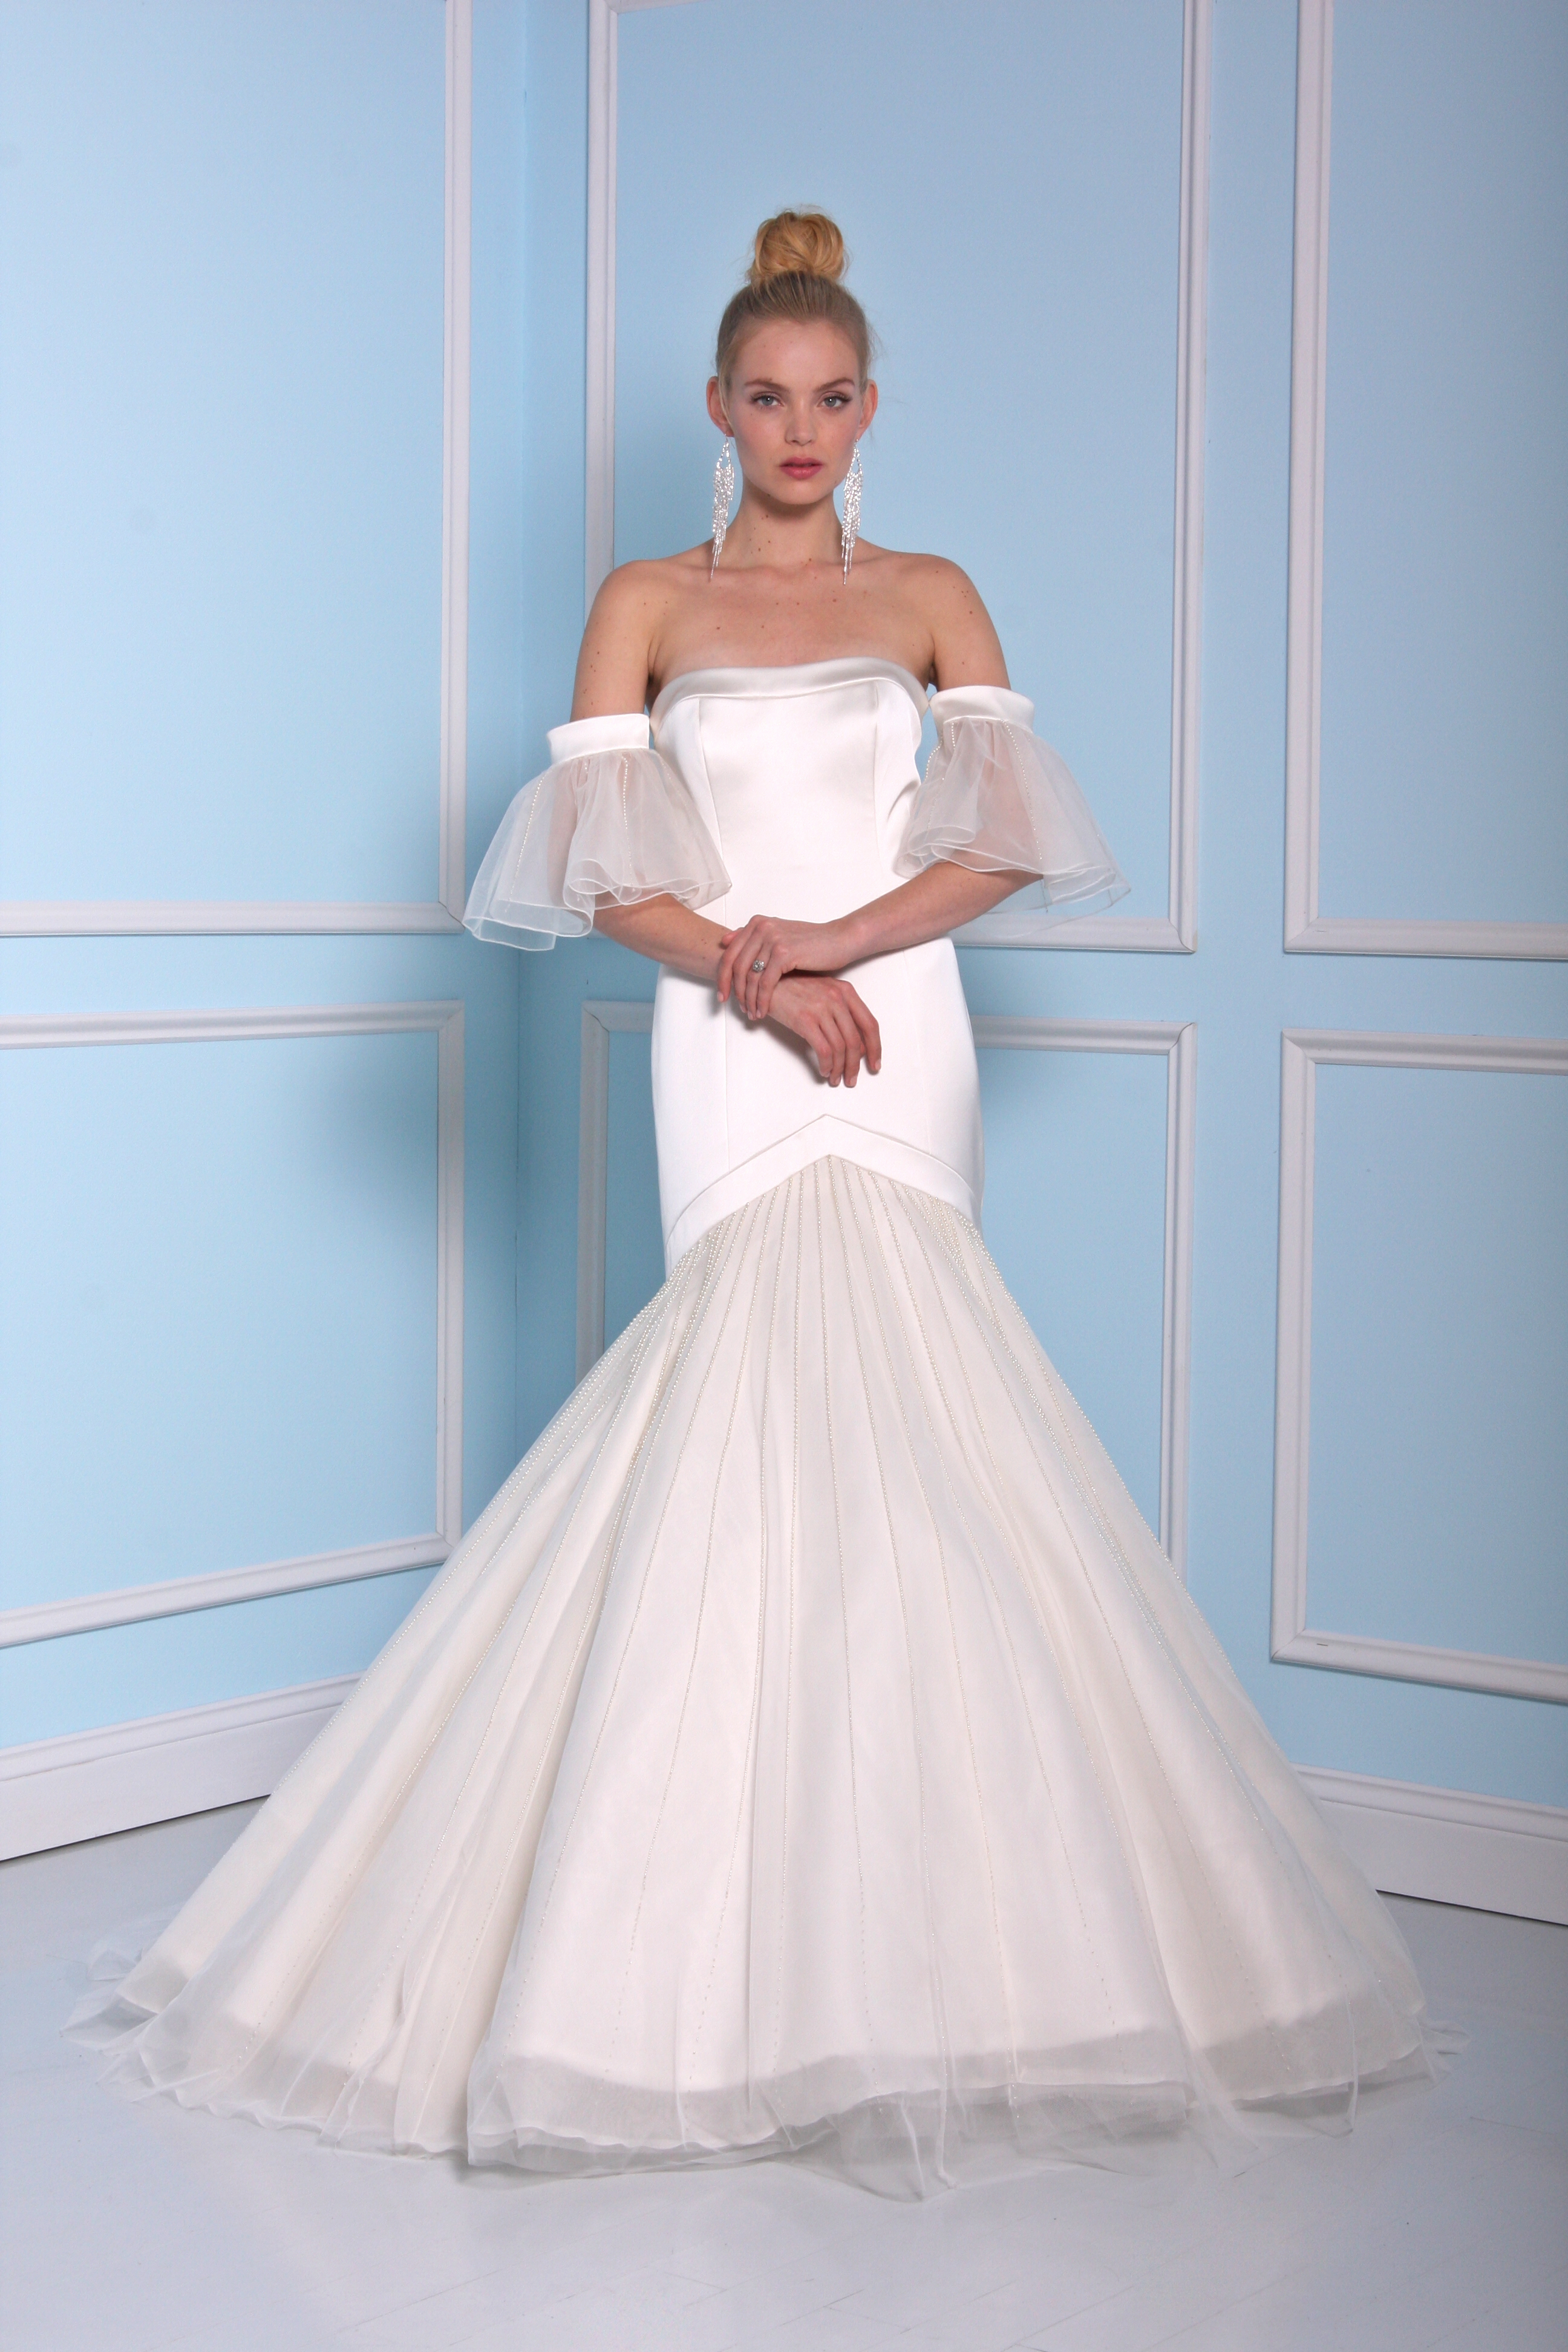 Beautiful Finsbury Park Wedding Dresses Crest - All Wedding Dresses ...